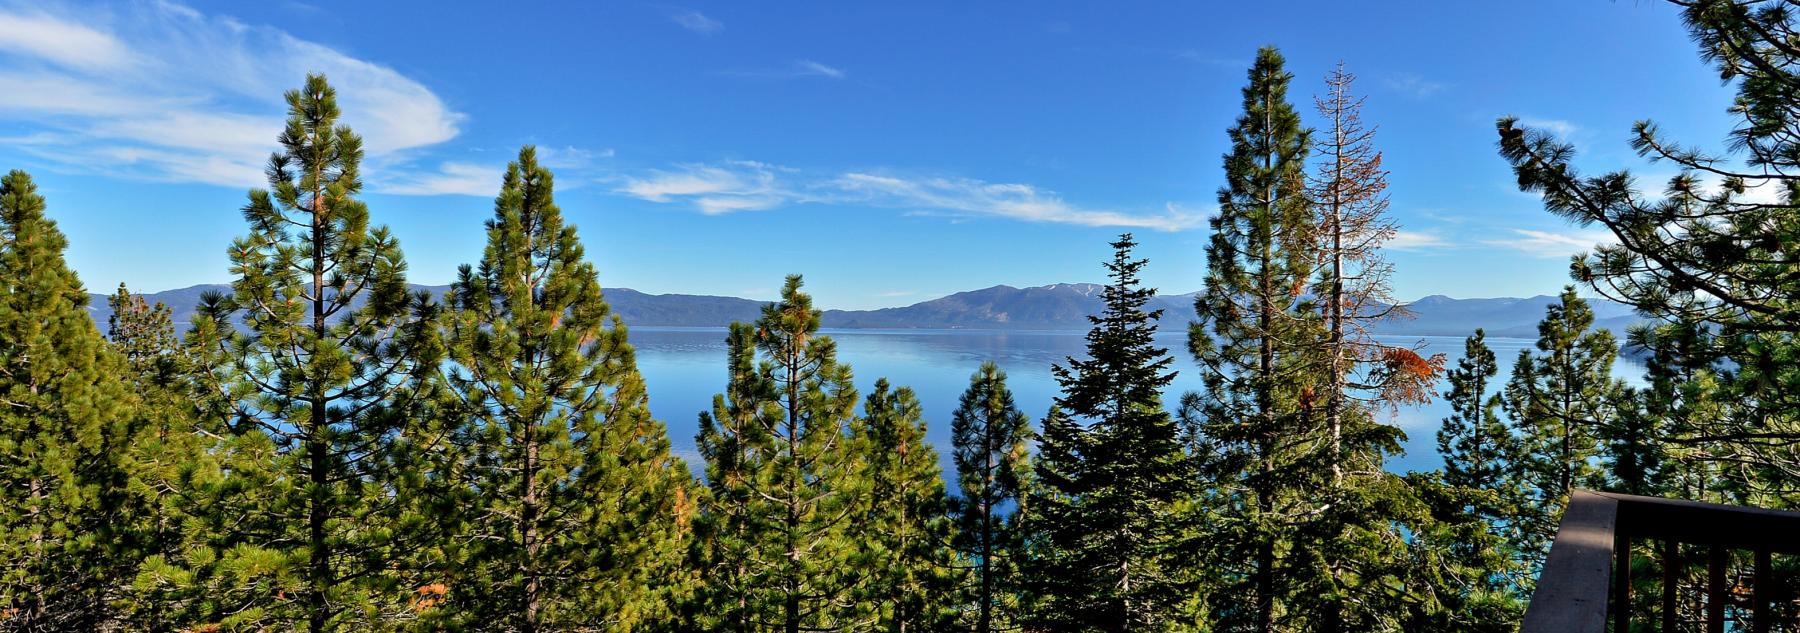 Lake Tahoe View